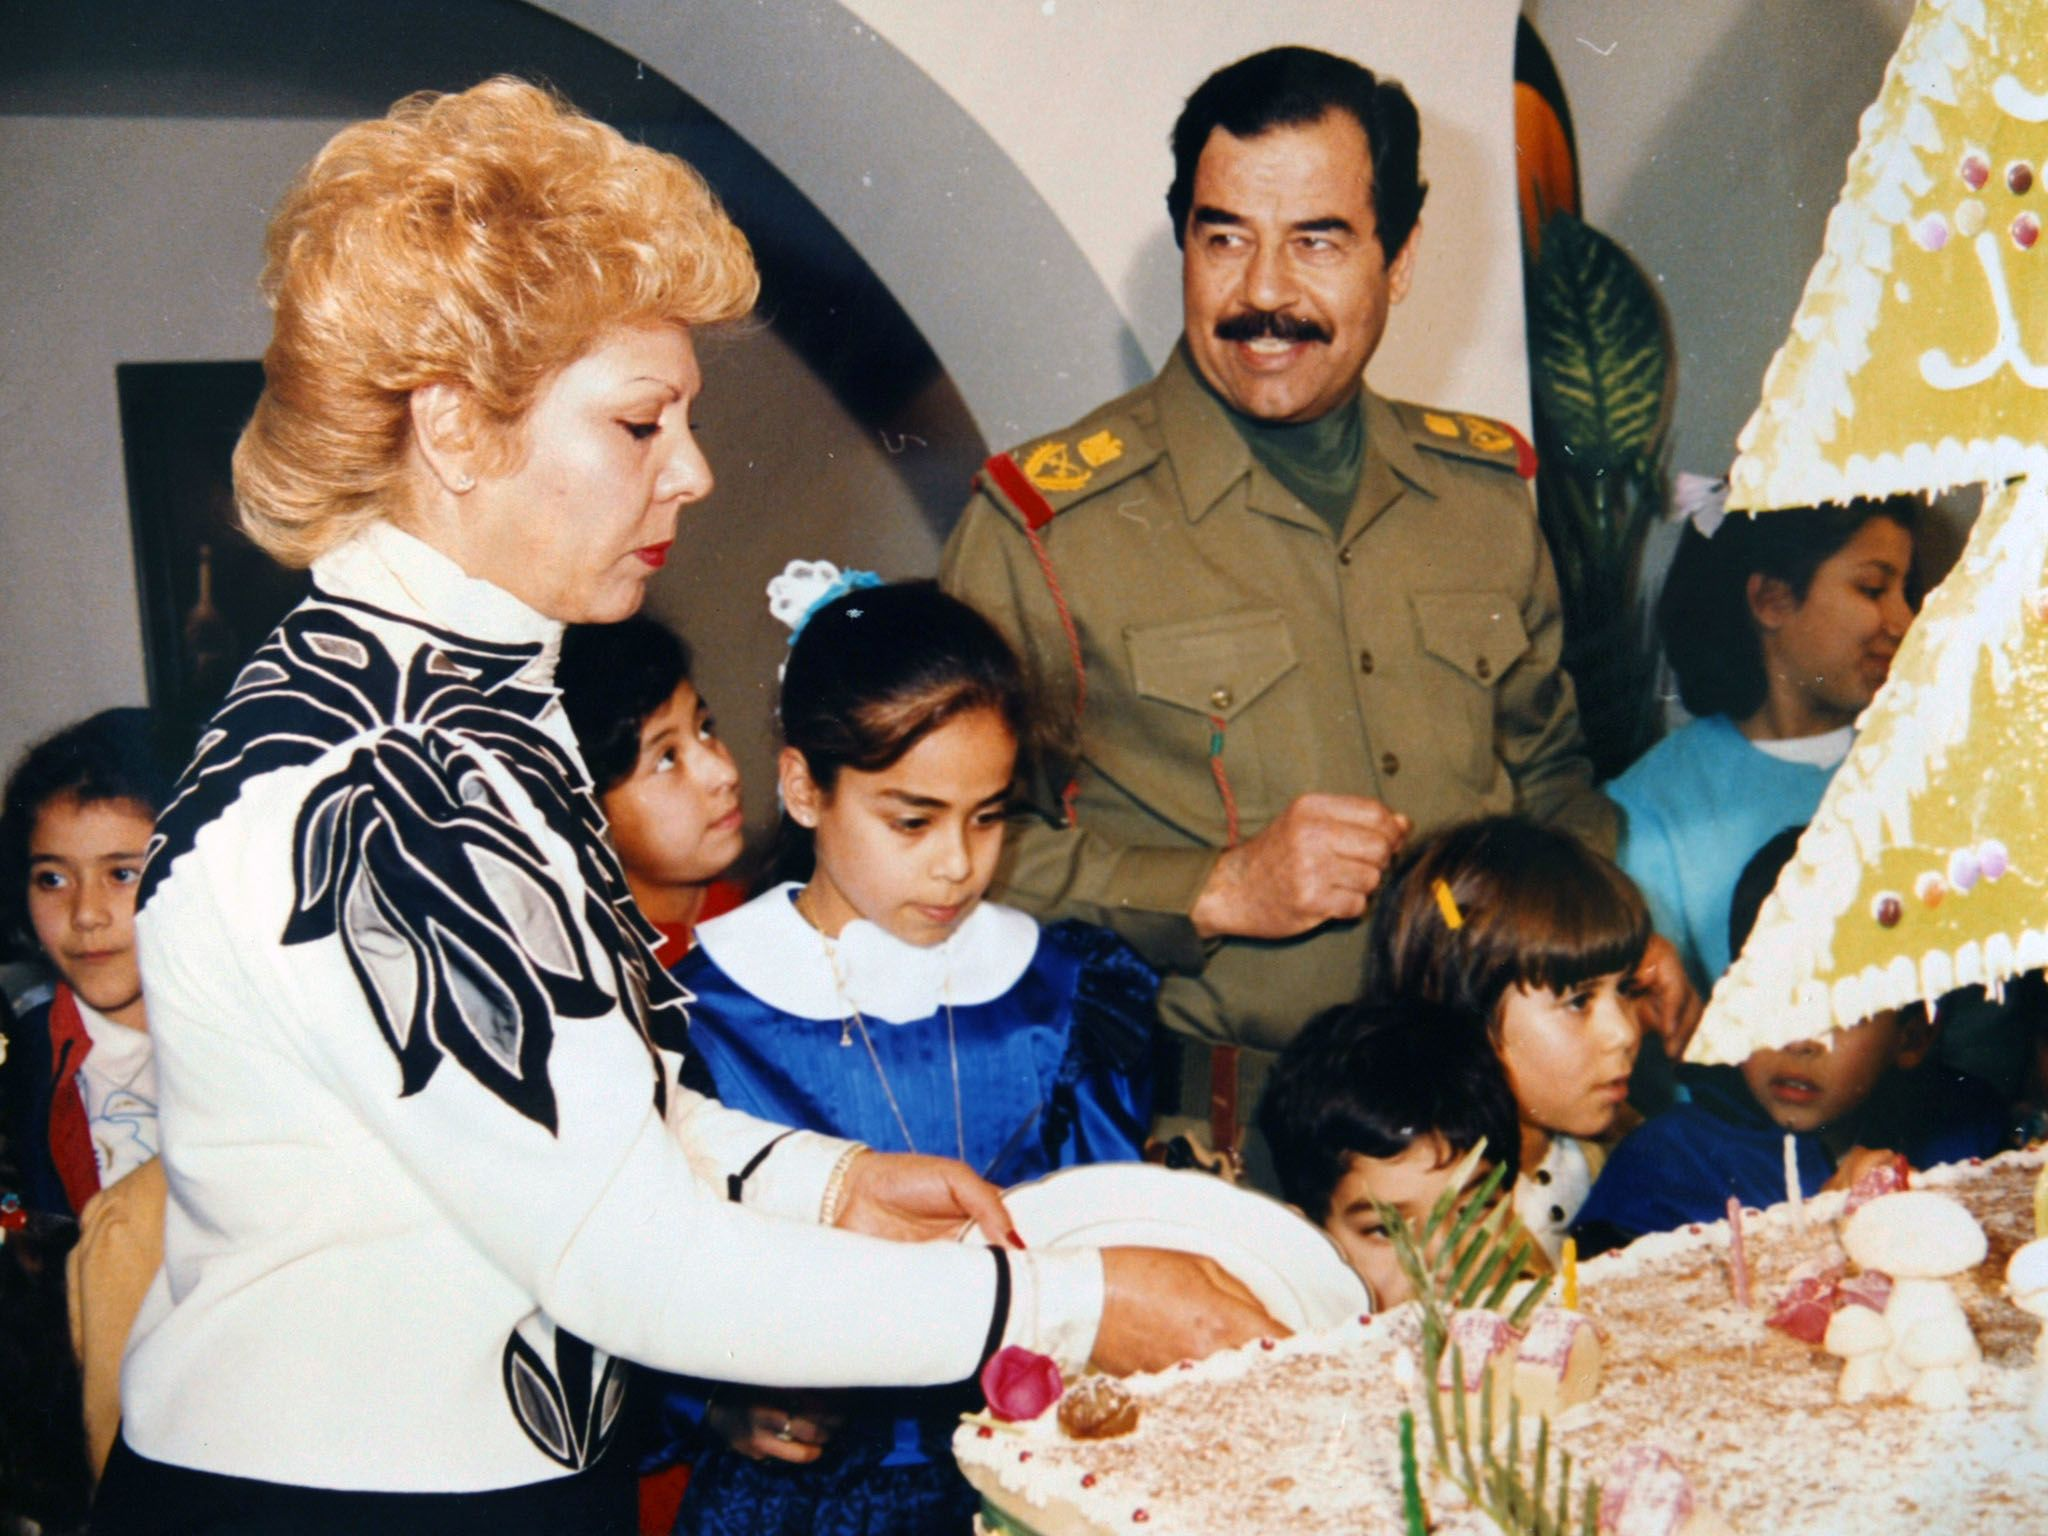 Iraq: Saddam Hussein celebrates the birthday of his daughter Hala as his first wife Sajda Kher... [Photo of the day - 九月 2016]